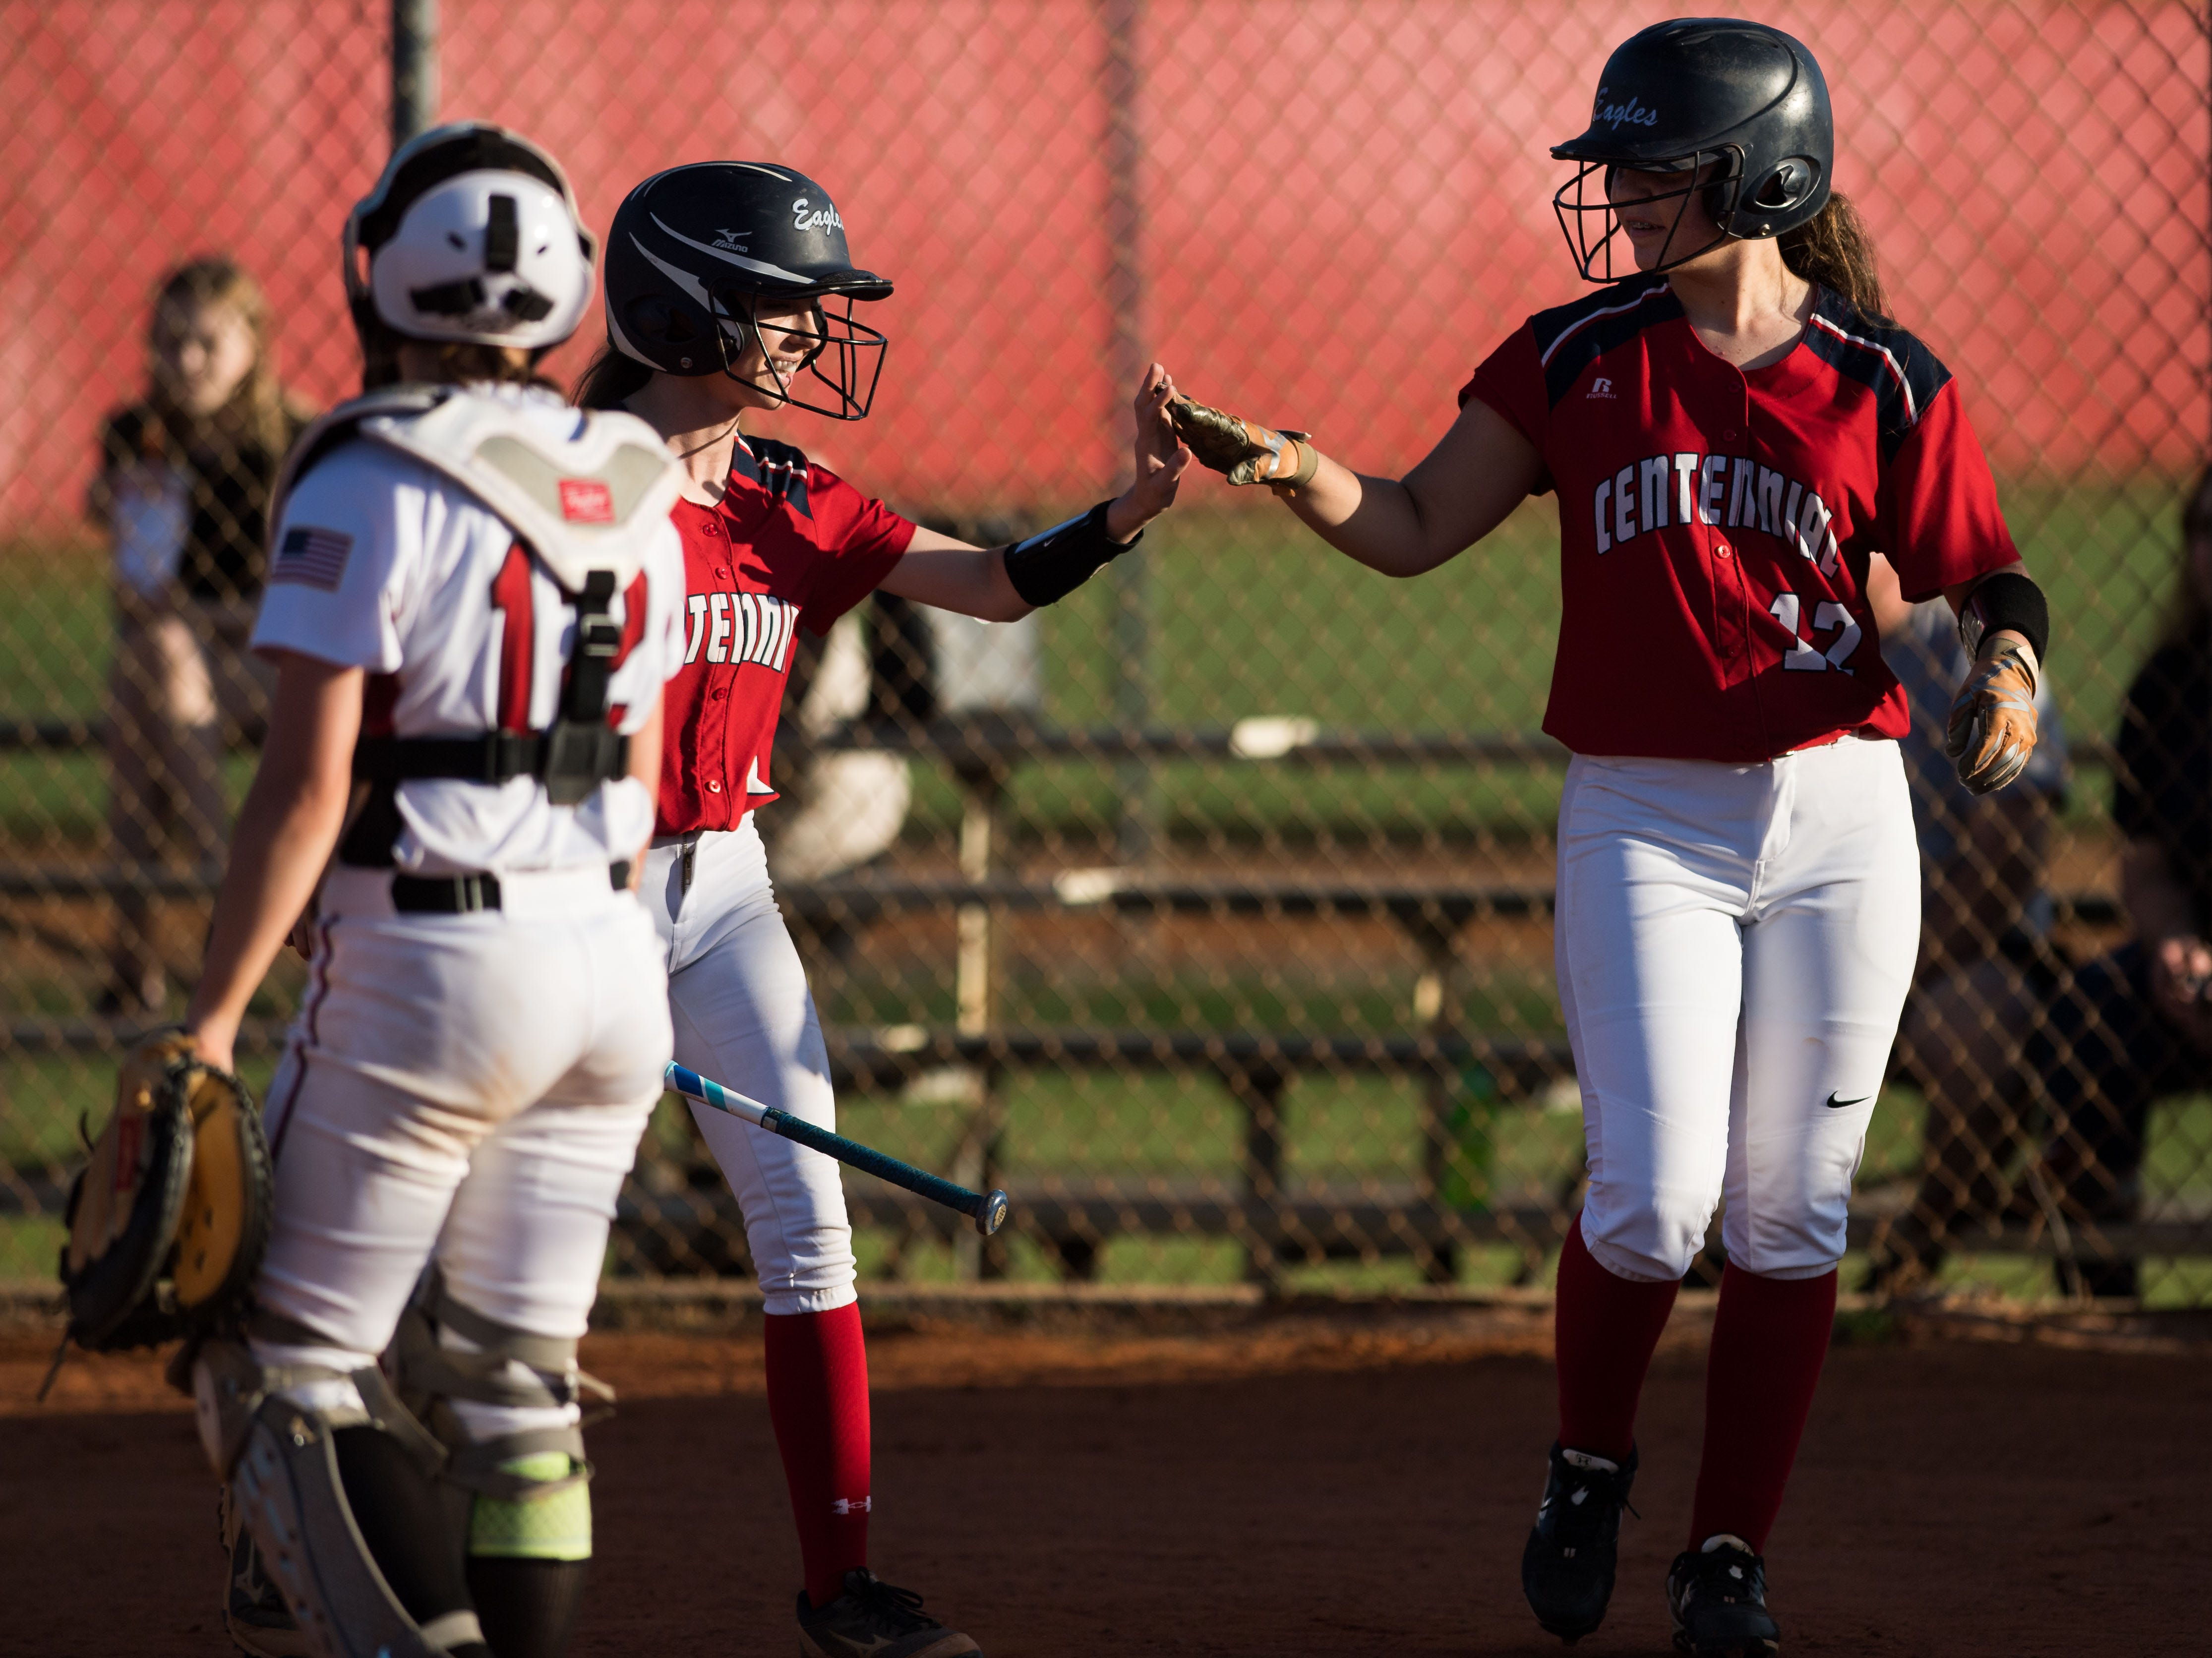 St. Lucie West Centennial's Vanessa Ordonez (right) is congratulated by teammate Rachel Thomas after scoring on a double hit by Randi Teed in the bottom of the fourth inning against Port St. Lucie during the high school softball game Wednesday, Feb. 20, 2019, at St. Lucie West Centennial High School in Port St. Lucie.